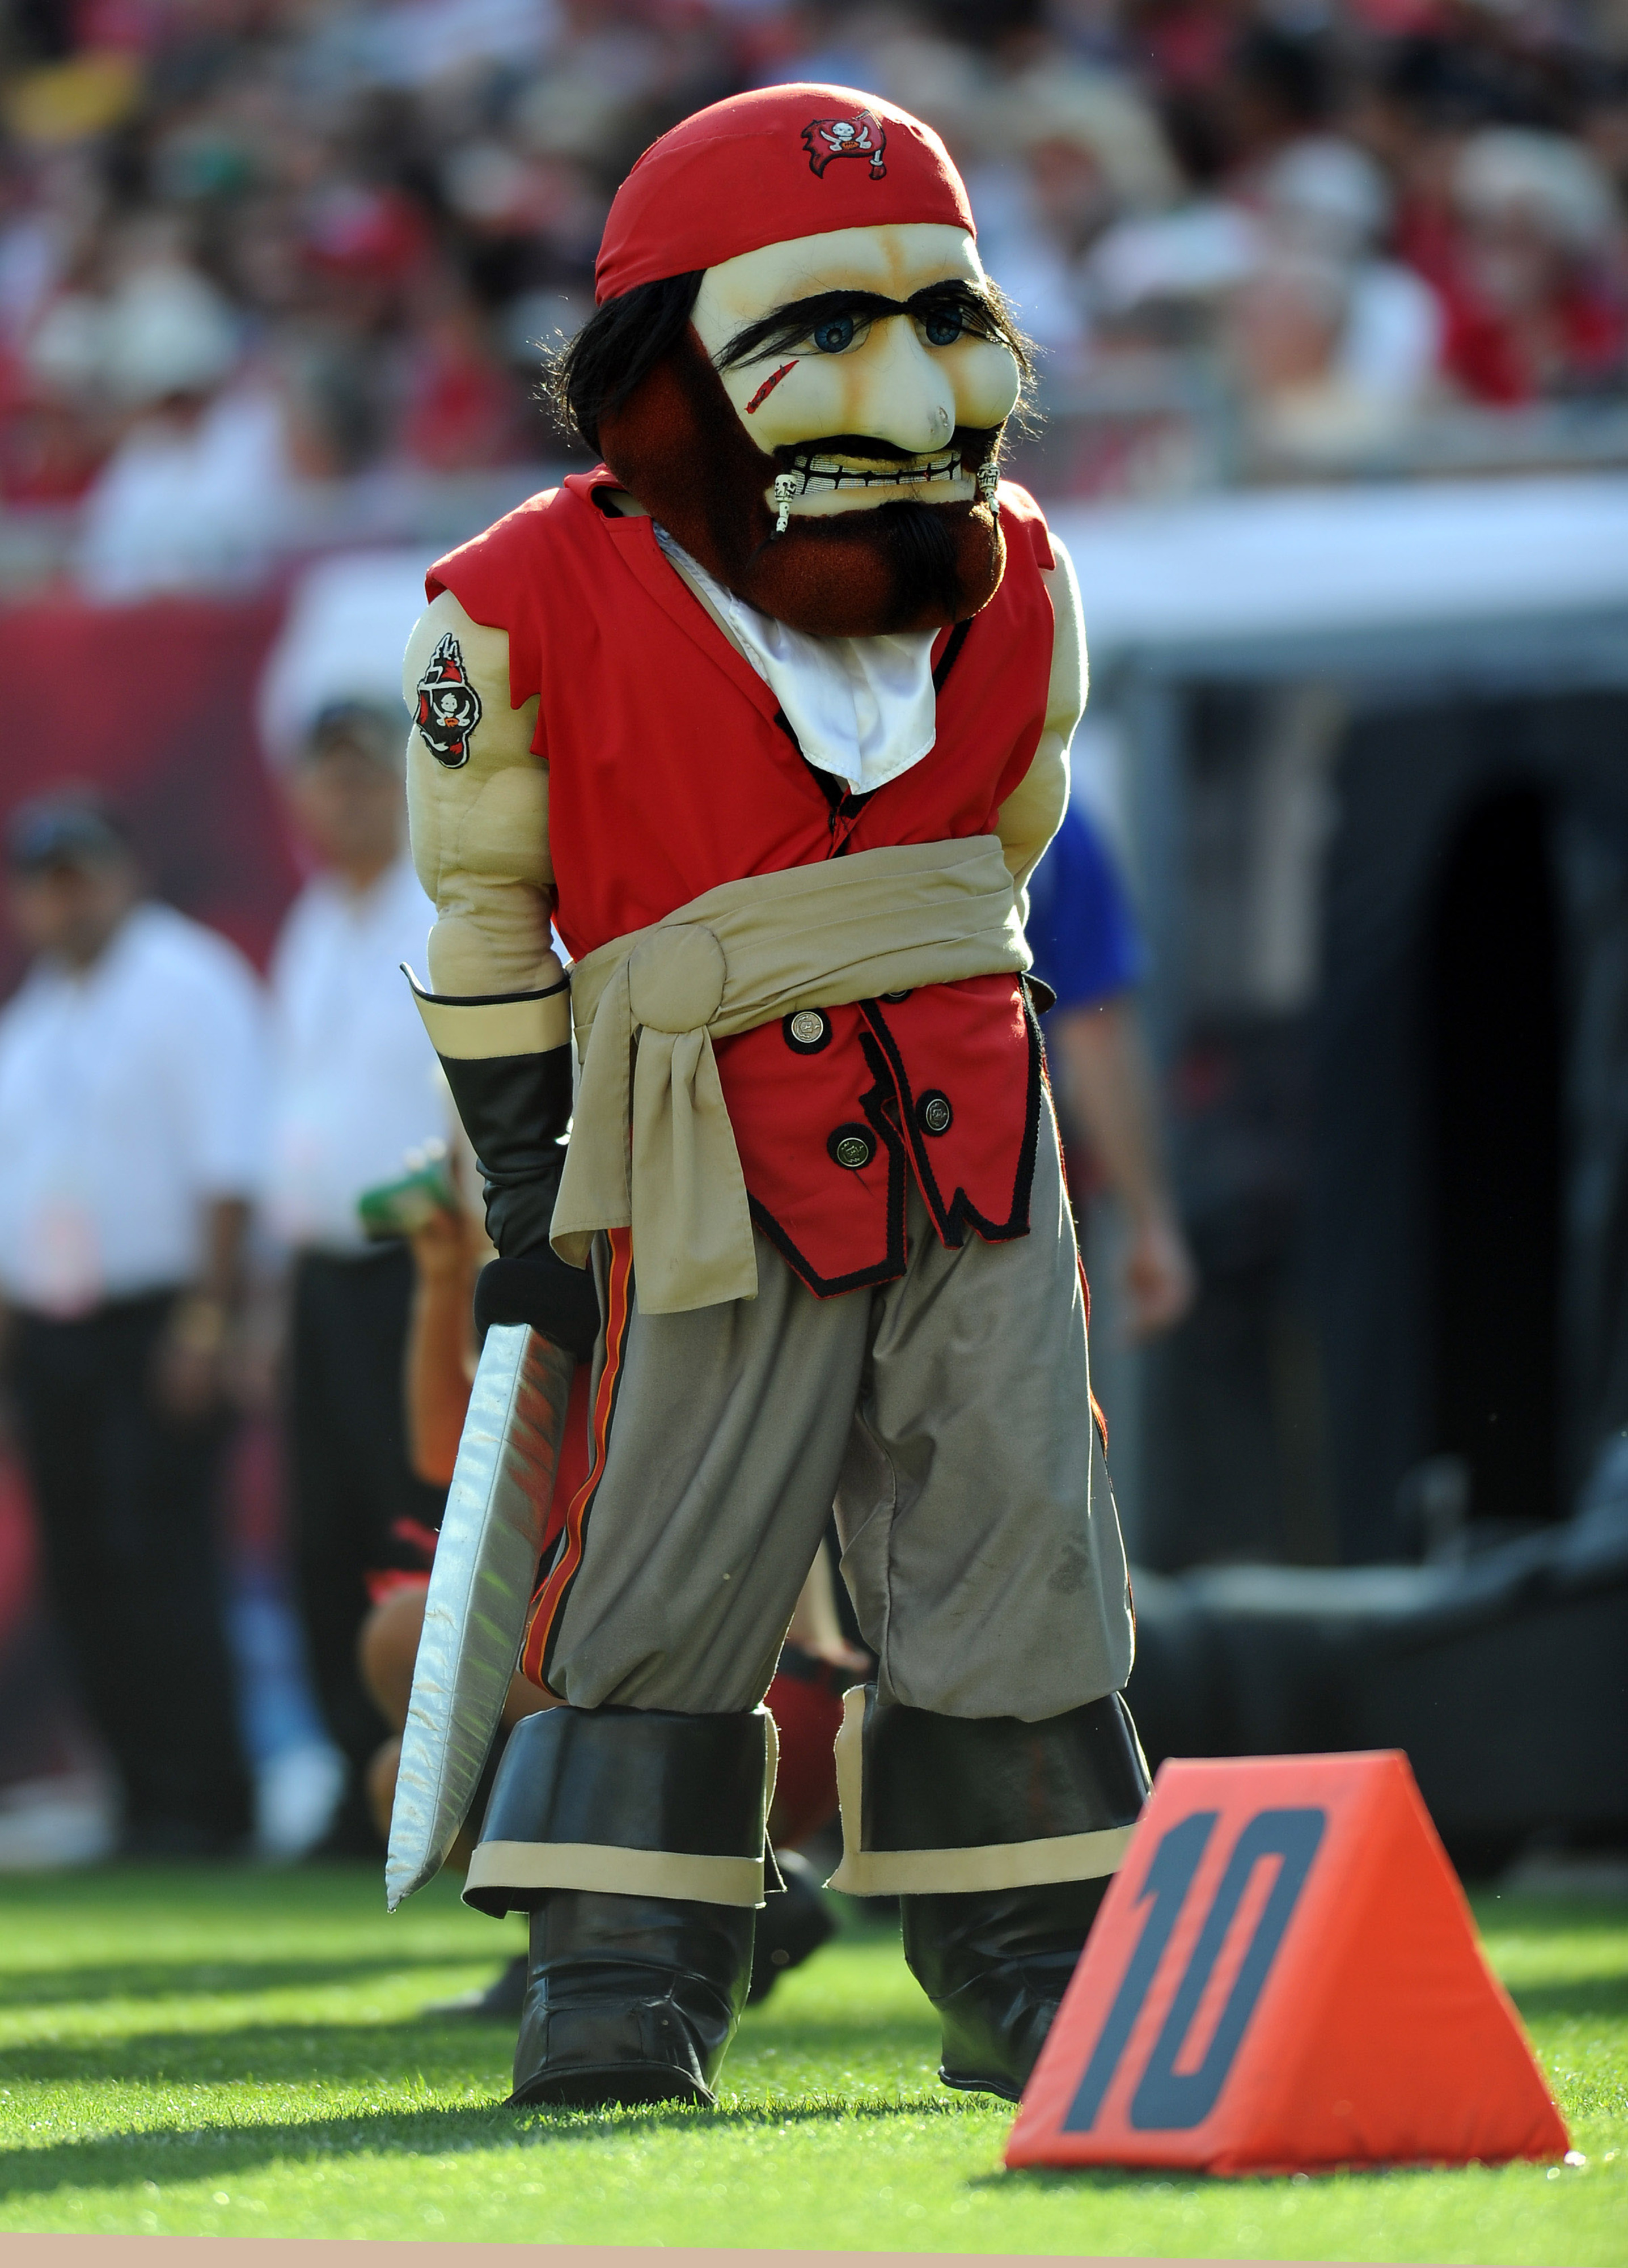 Even the mascot was depressed on Sunday